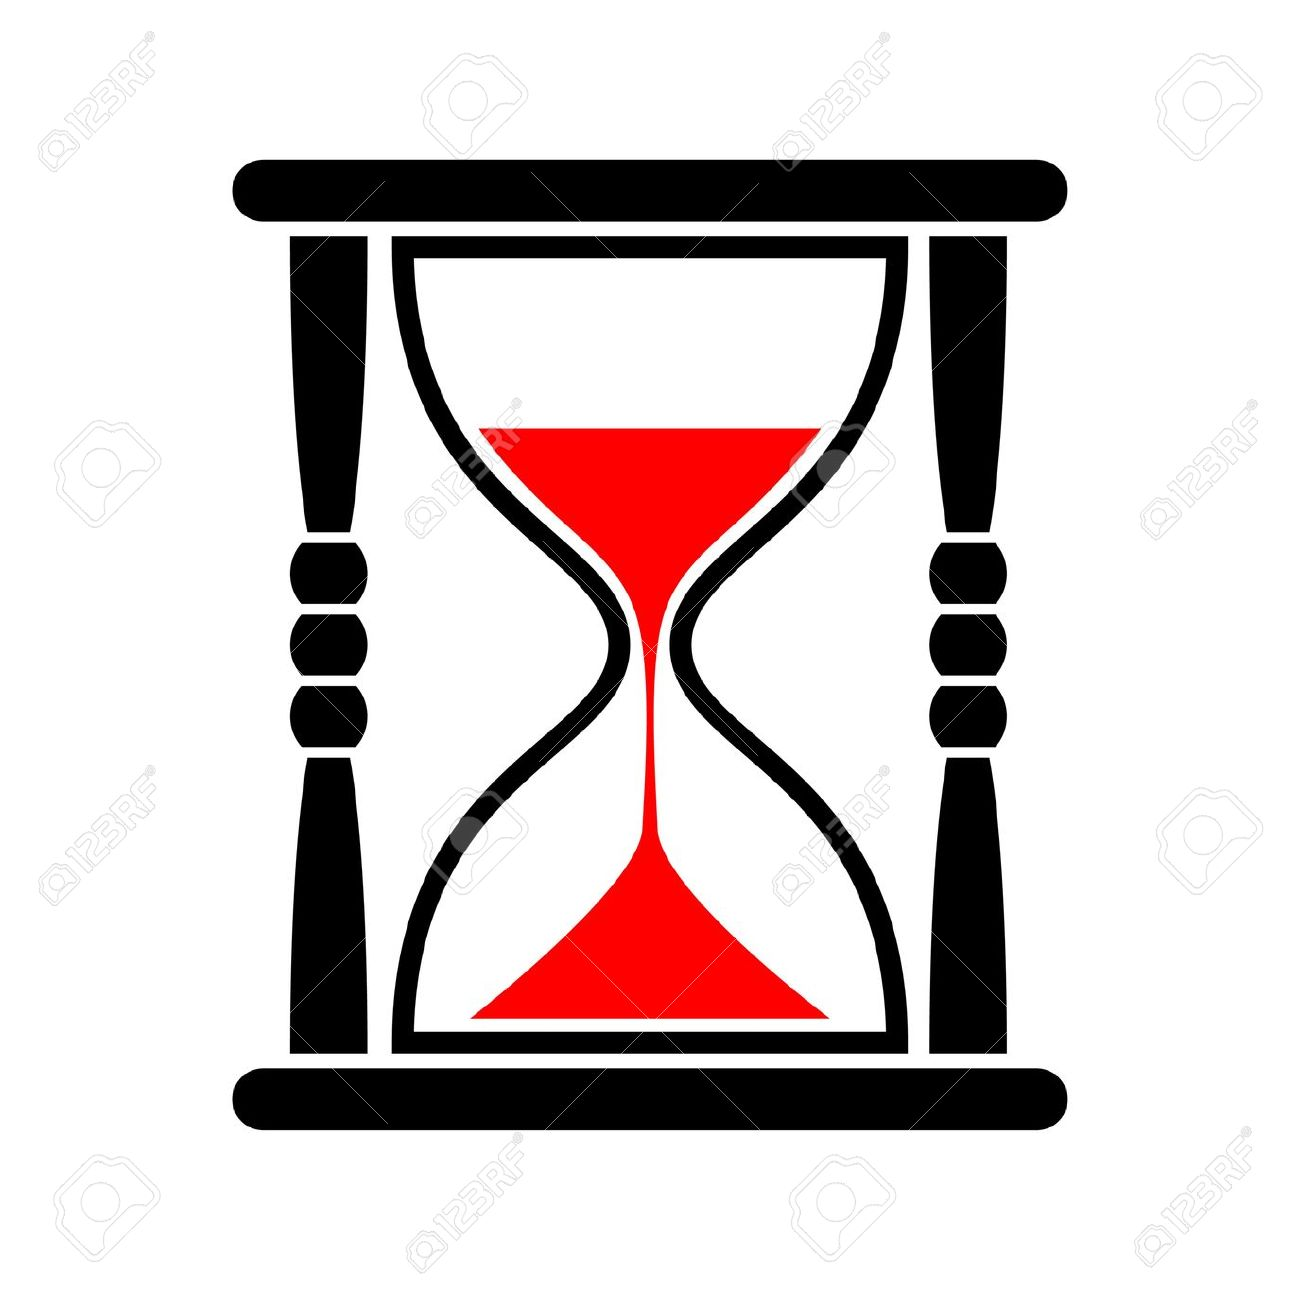 Hourglass clipart. Red